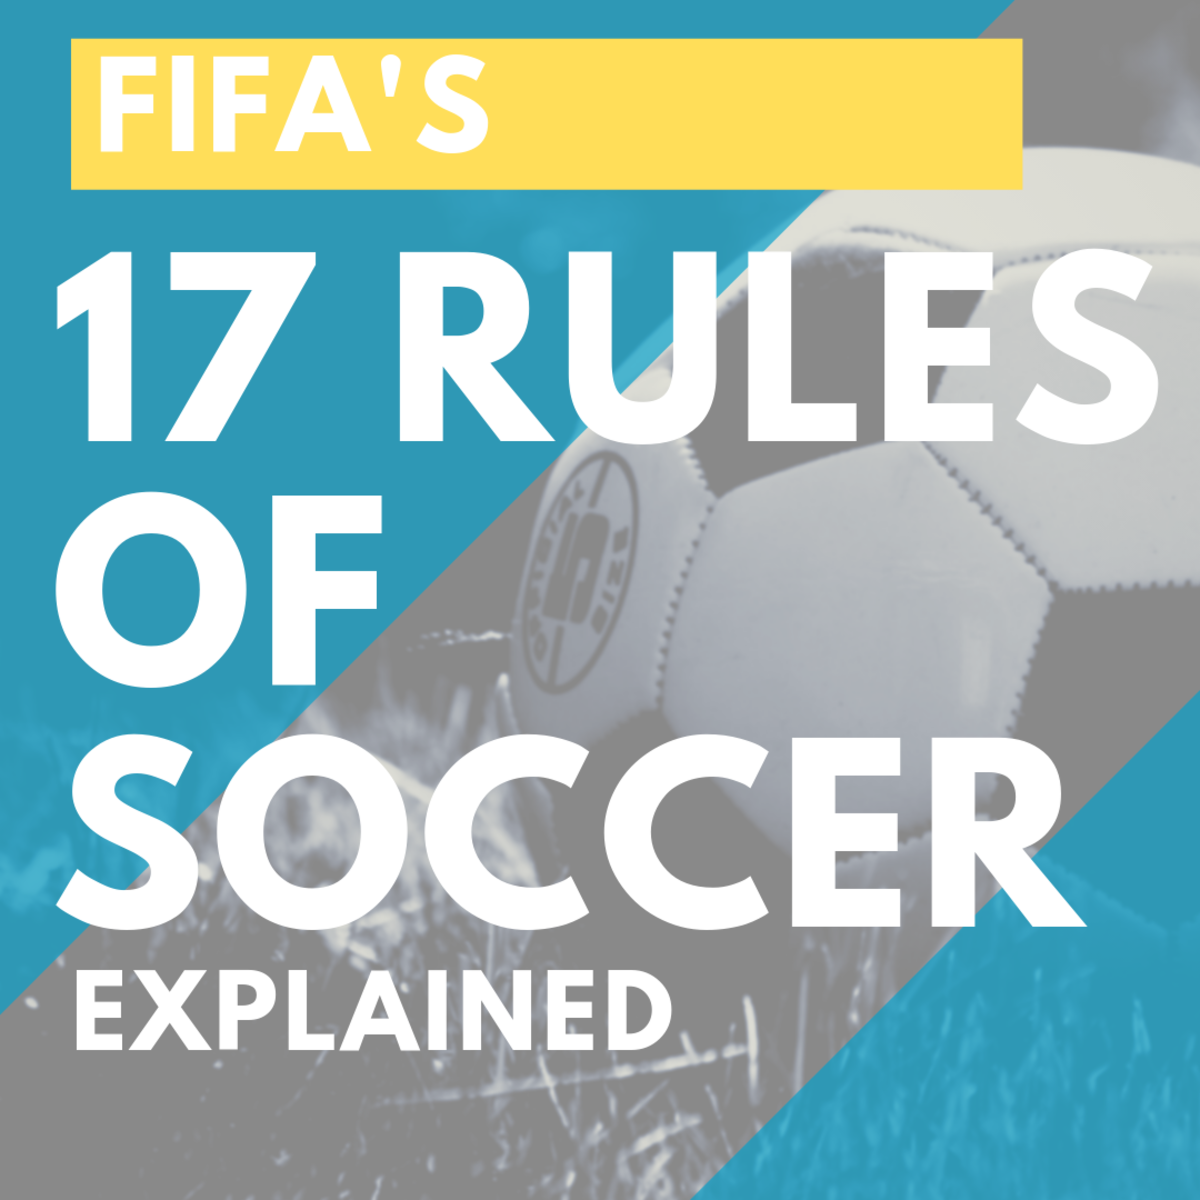 FIFA's 17 Laws of Football (Soccer) Explained